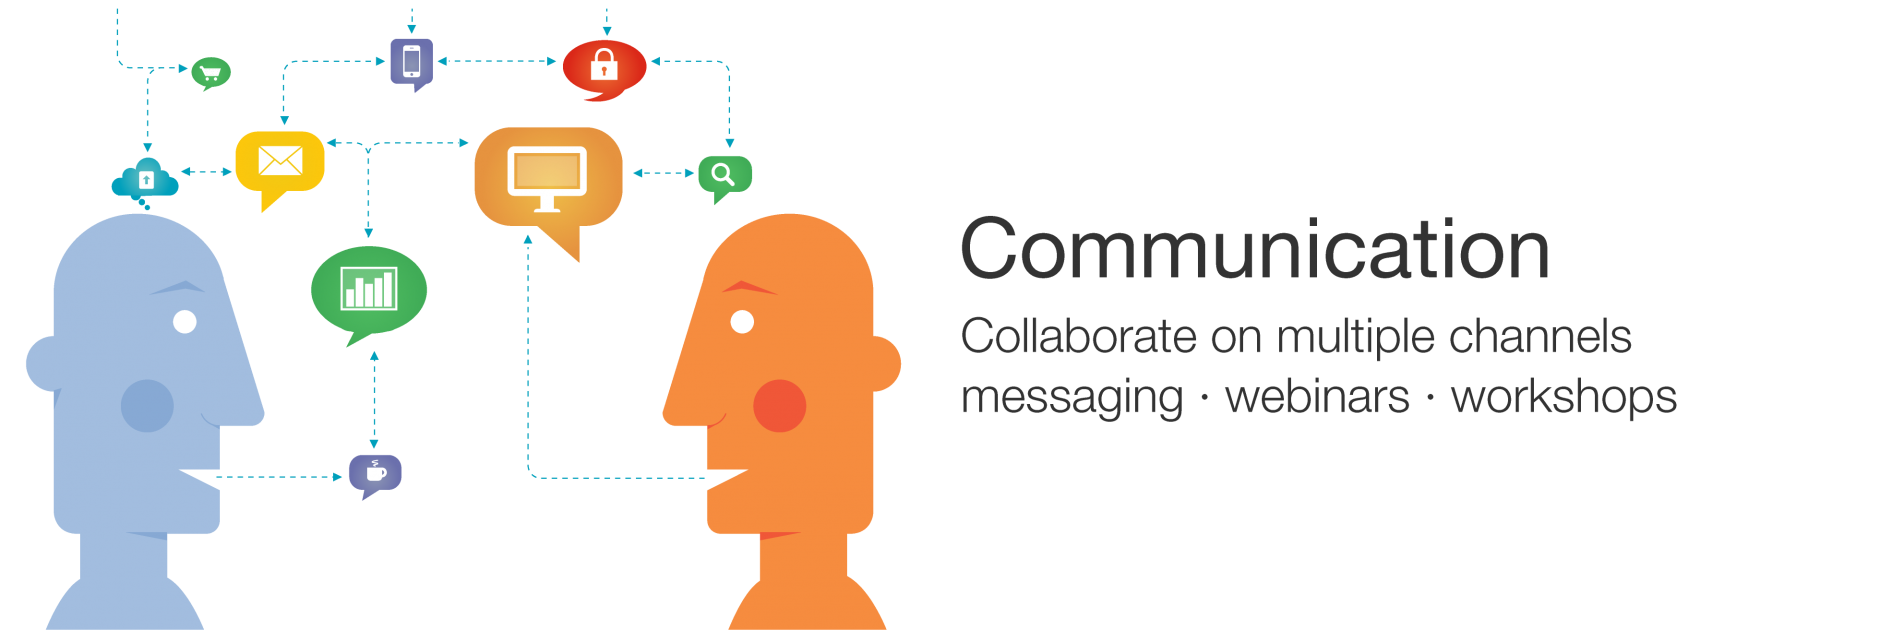 messaging-webinars-workshops-fivepaths